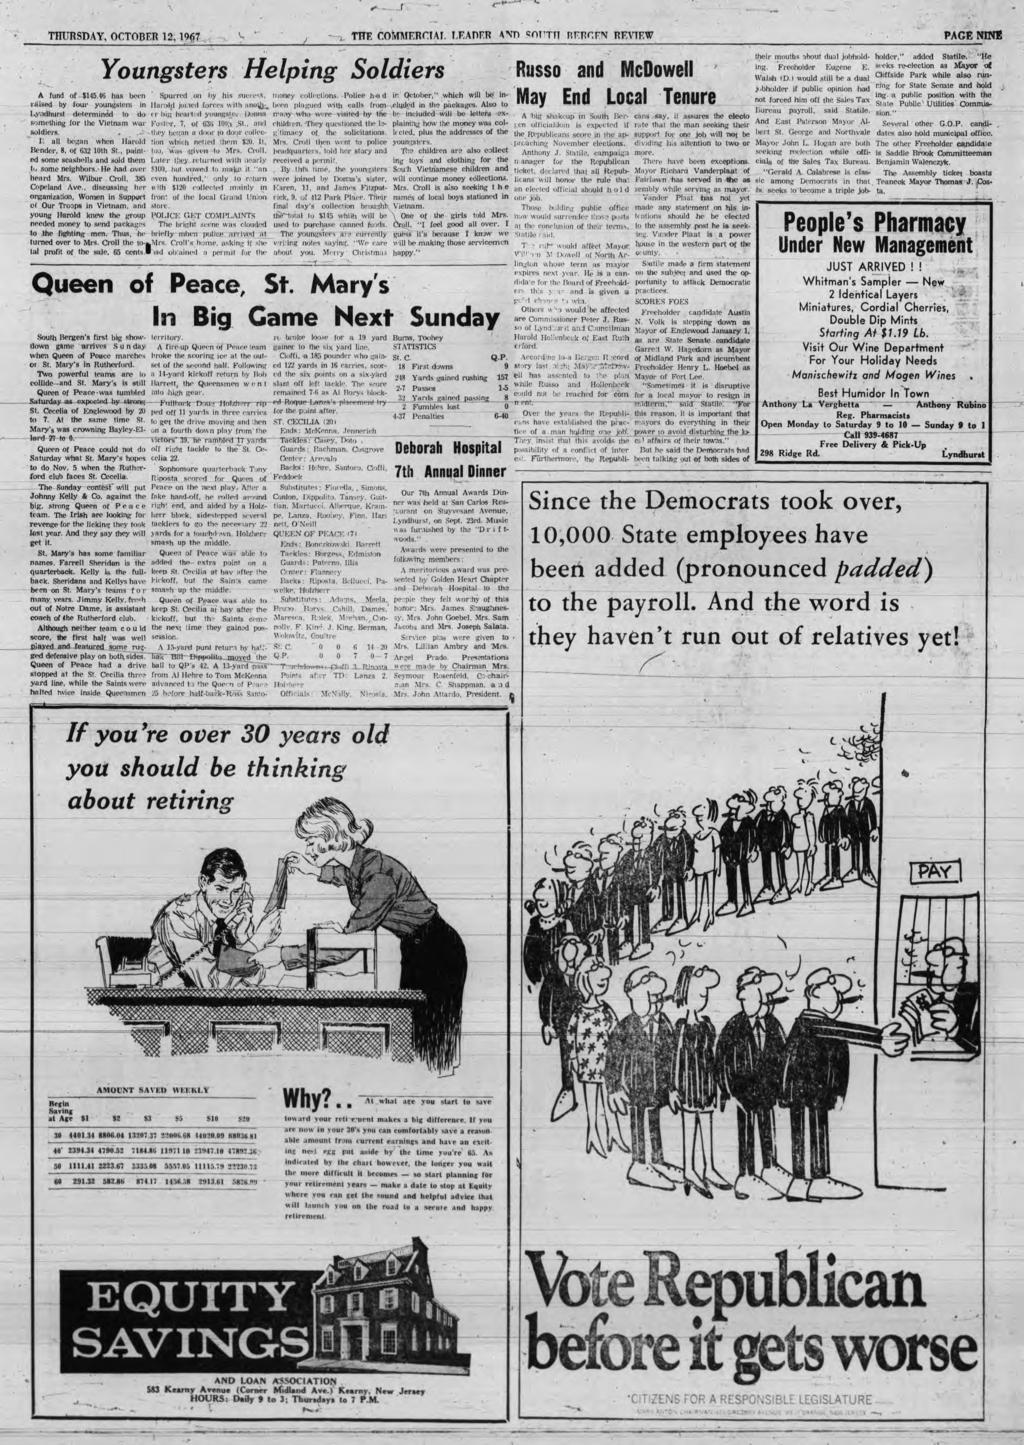 ... r THURSDAY, OCTOBER 12,1967 THE COMMERCIAL LEADER AND SorTTT RERCEN REVIEW PAGE NINE Youngsters Helping Soldiers A fund o f. $145.46 has been Spurred on by his succcs*.